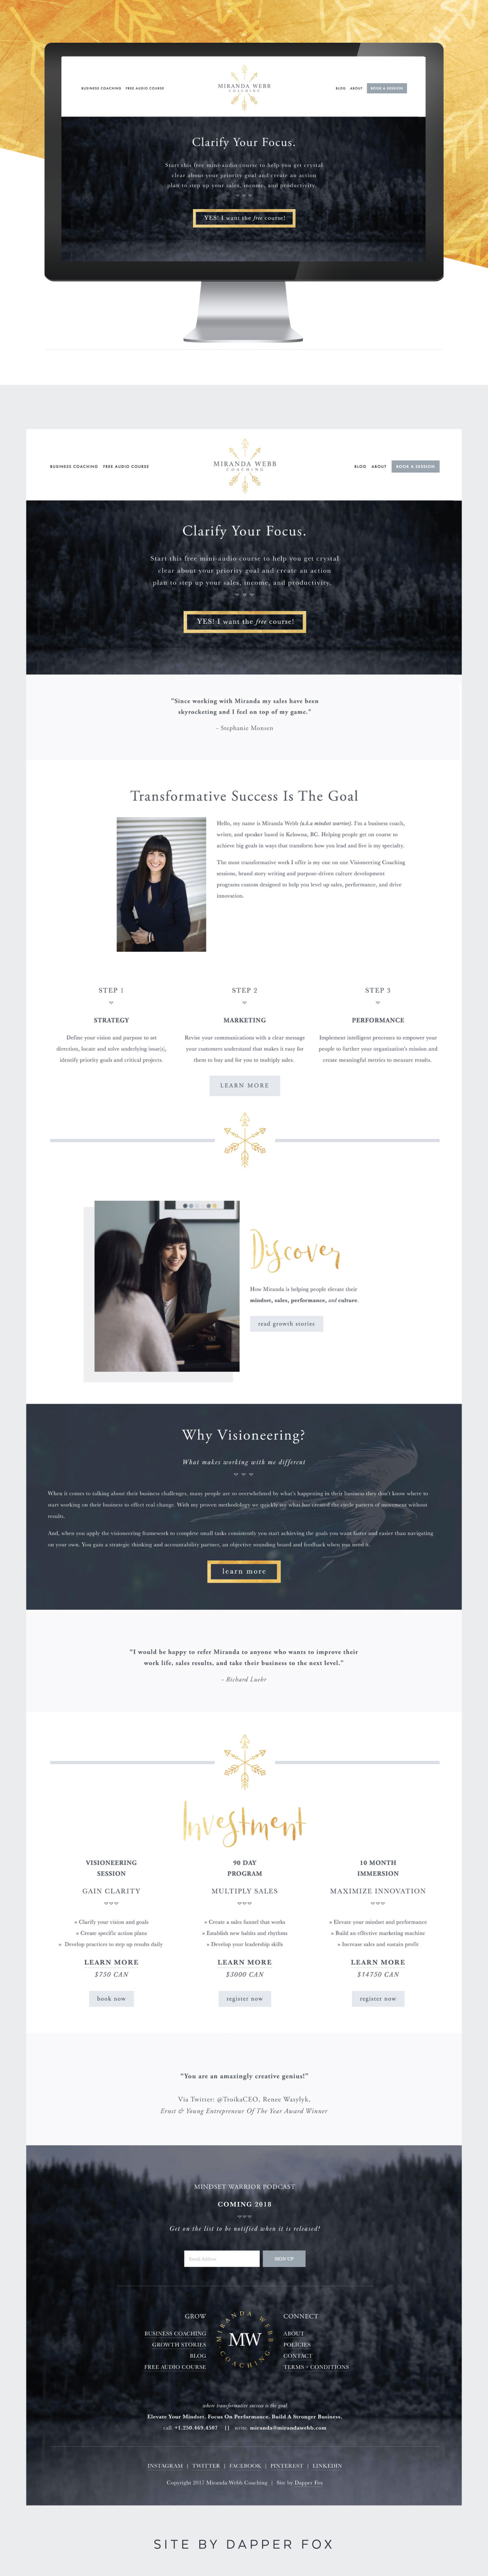 Miranda Webb Squarespace Website for Business Coaching - Modern, Full Banner Forest Imagery with Gold, Greys and Neutral Color palette